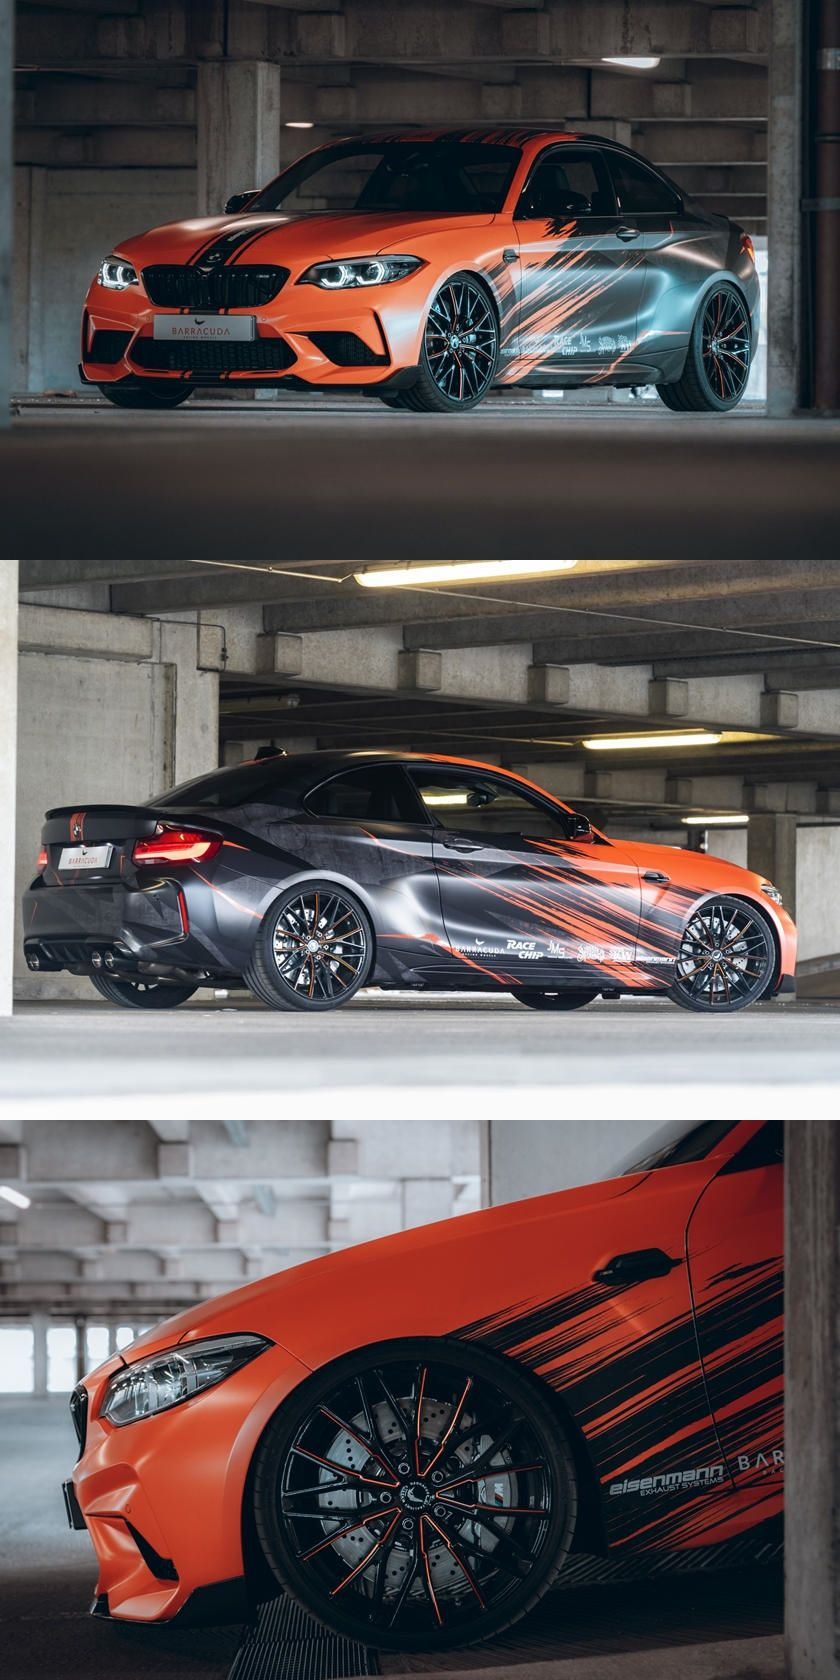 Bmw M2 Competition Gets Wild Makeover For Owners That Crave Attention In 2020 Bmw M2 Bmw Car